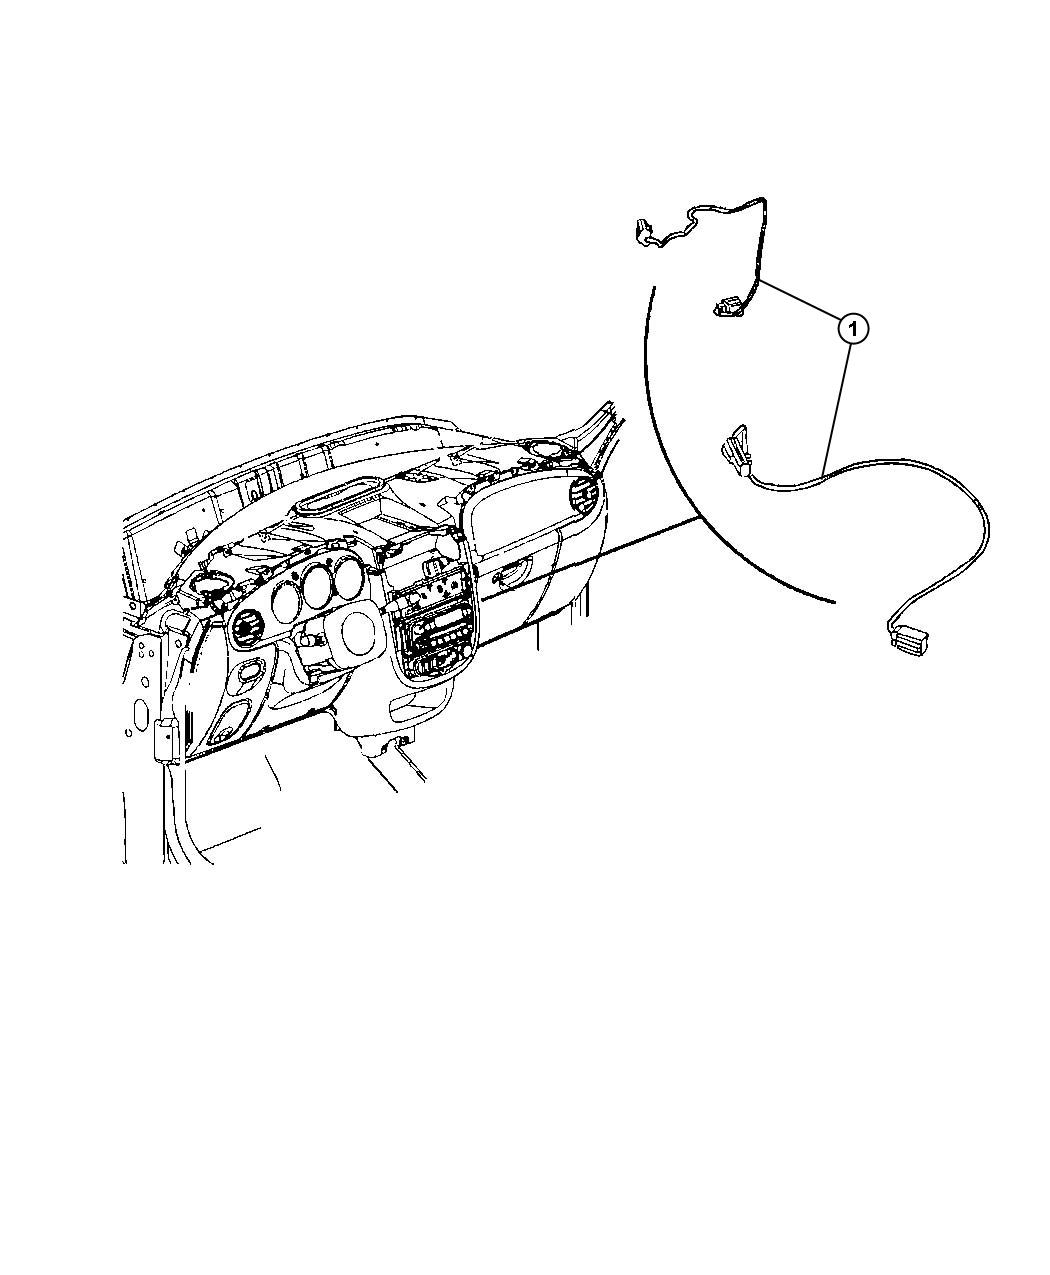 Chrysler Pt Cruiser Wiring Used For A C And Heater Air